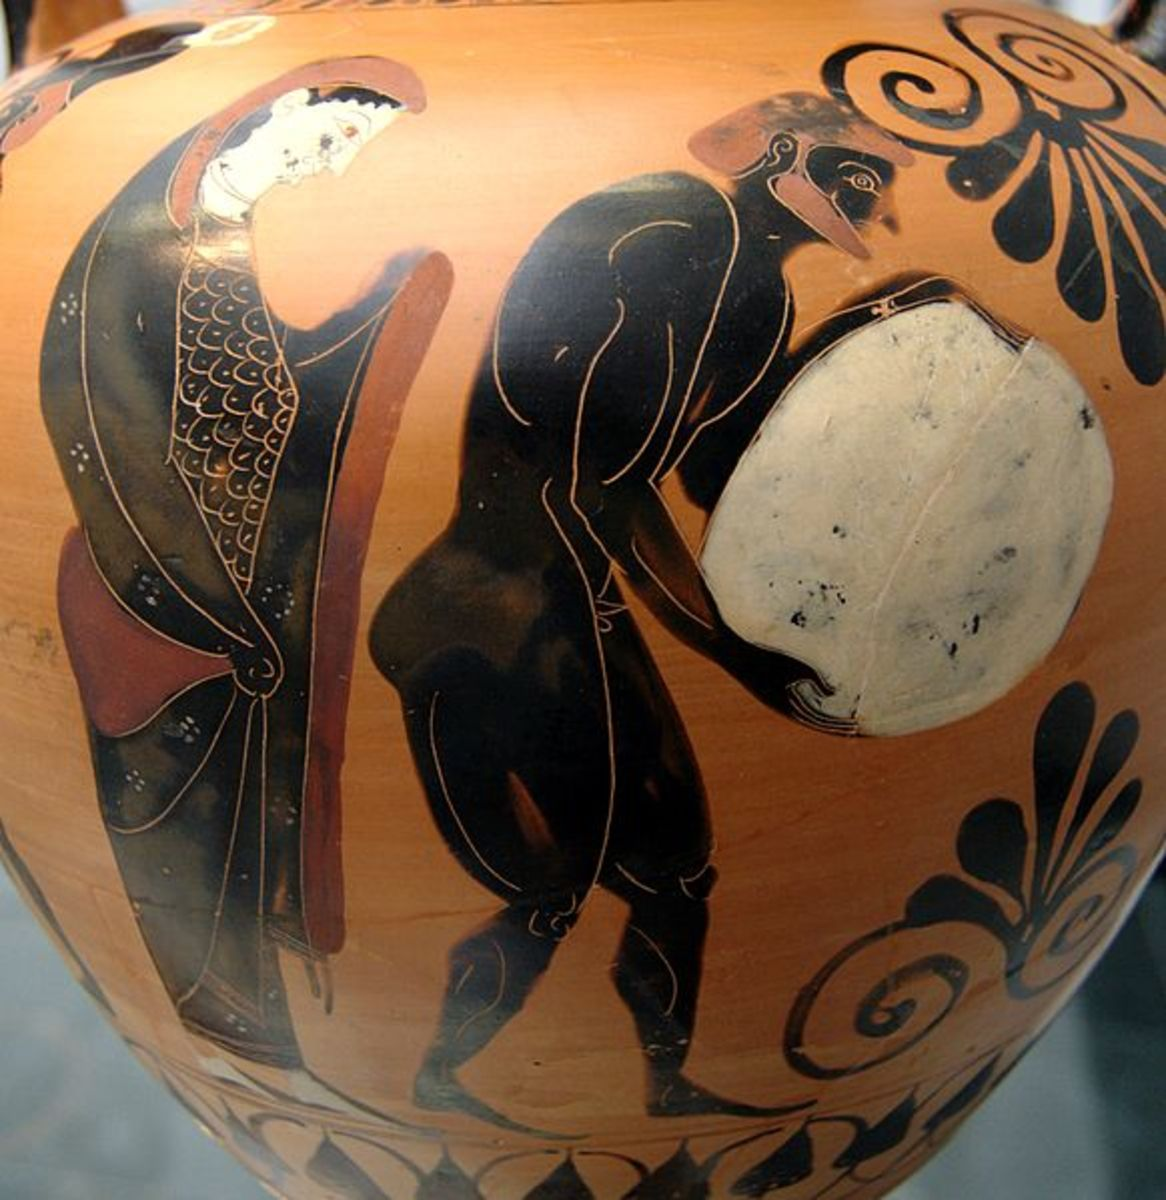 Persephone Supervising Sisyphus' Punishment